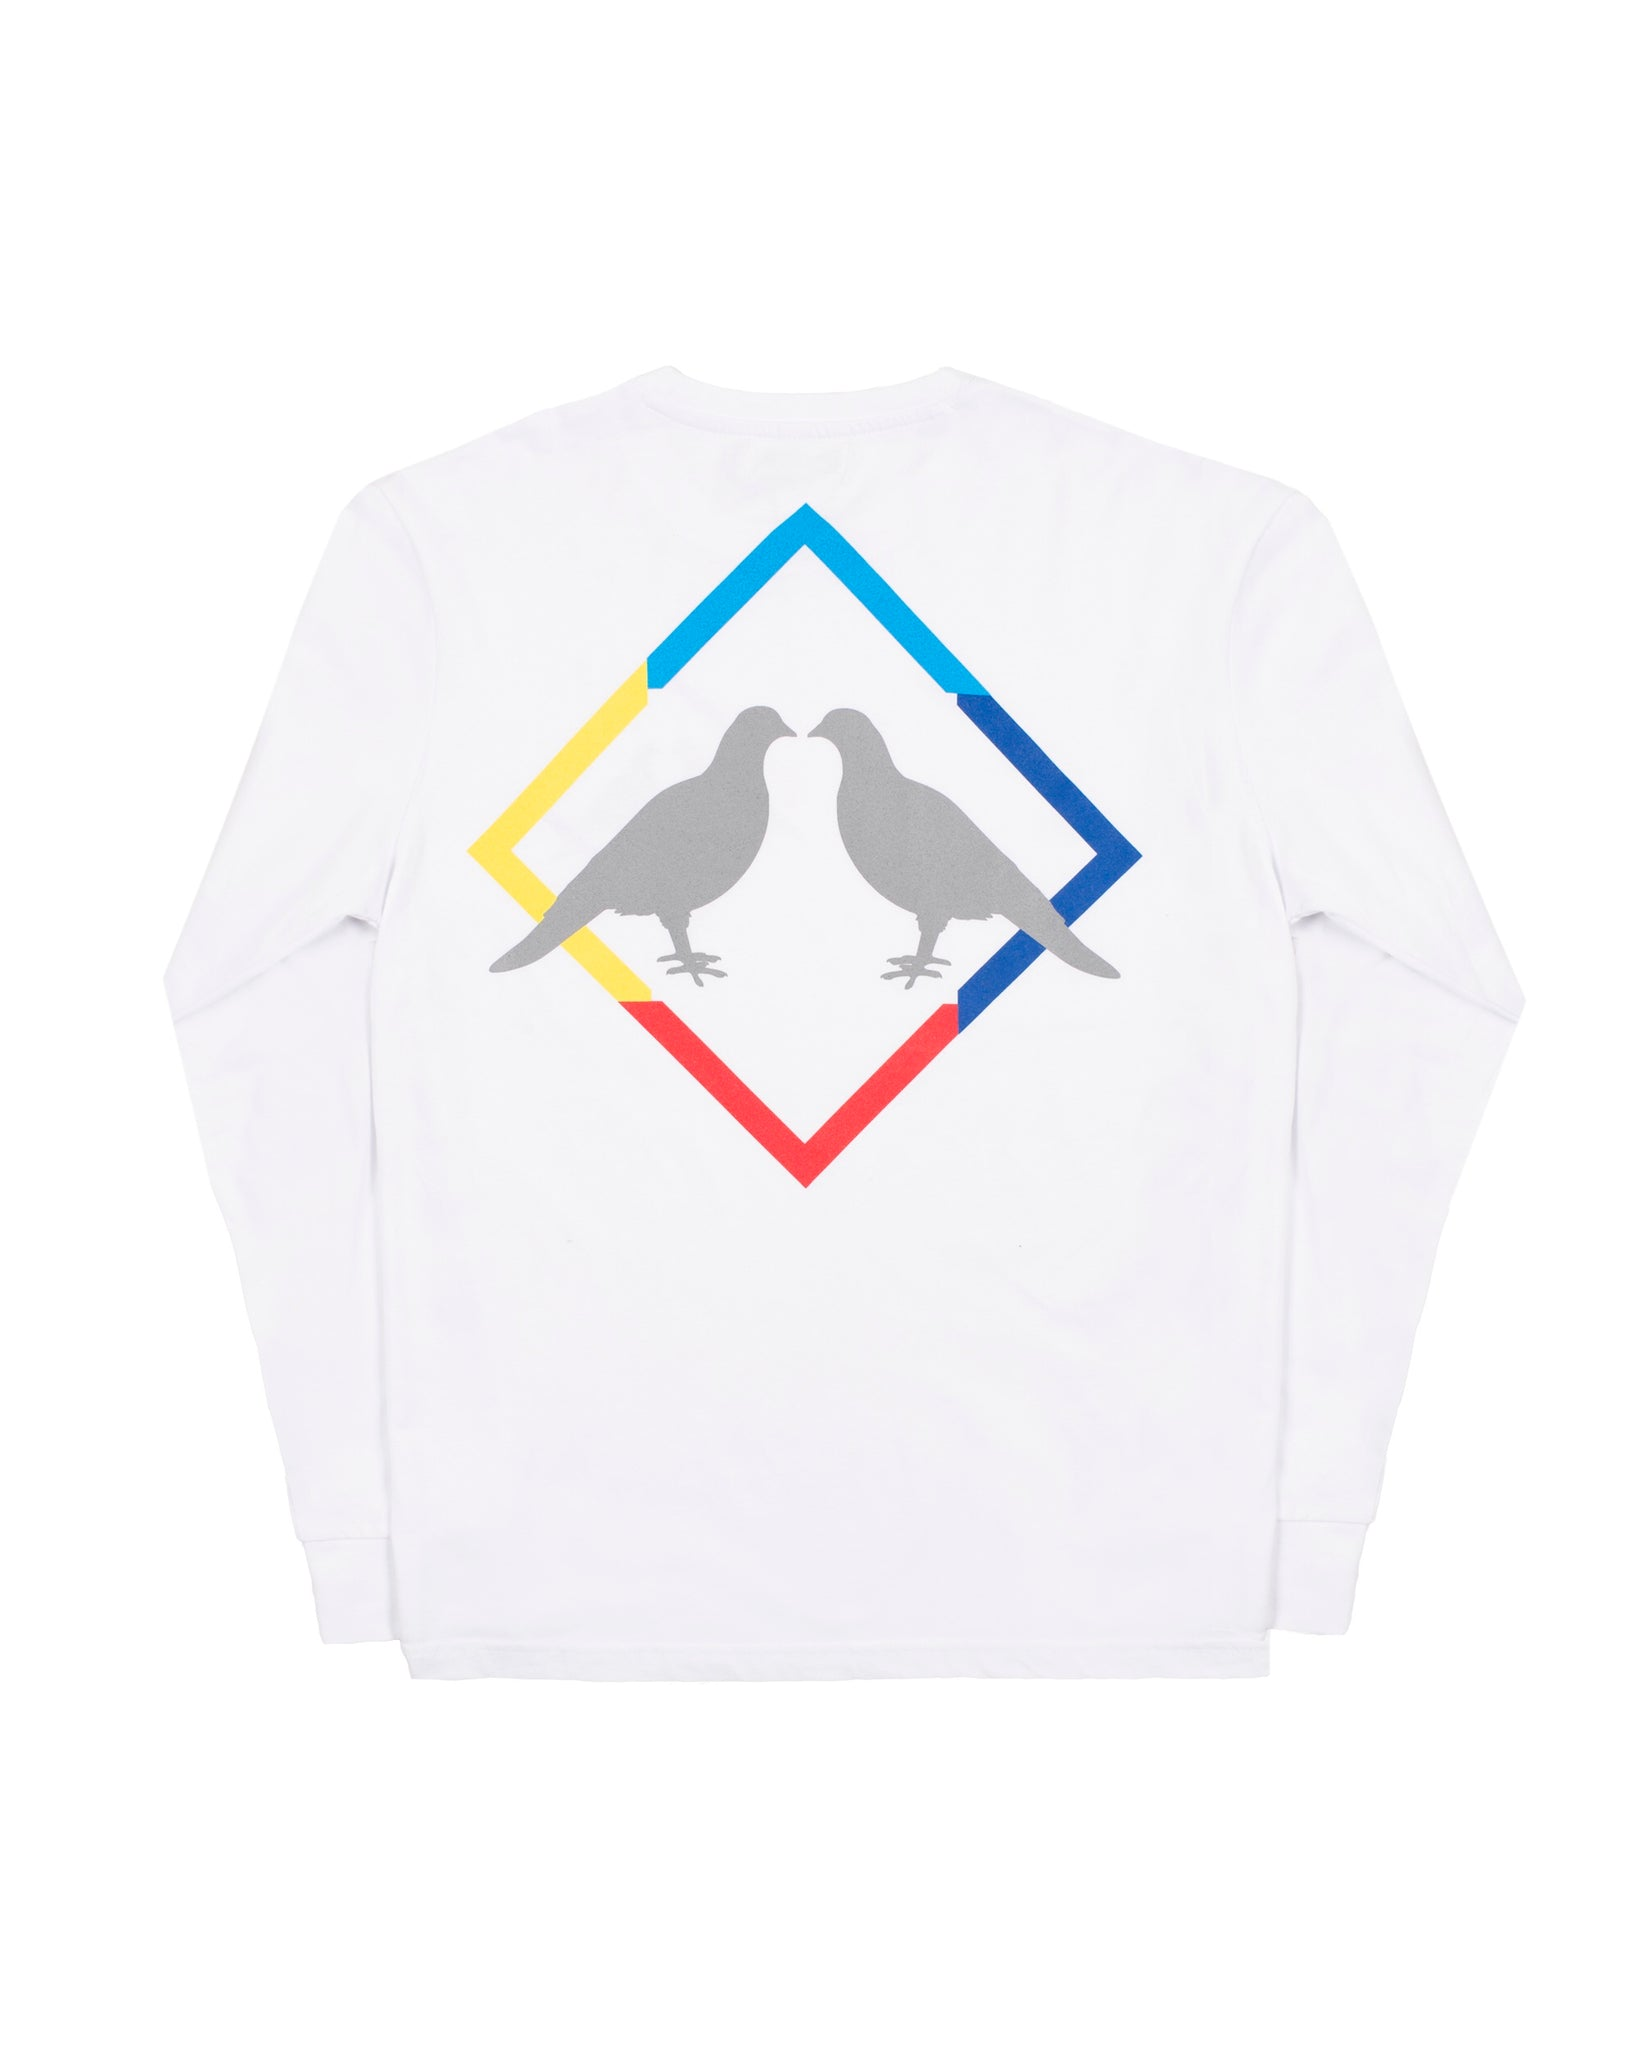 Bedstuyfly 2.0 Long Sleeve White